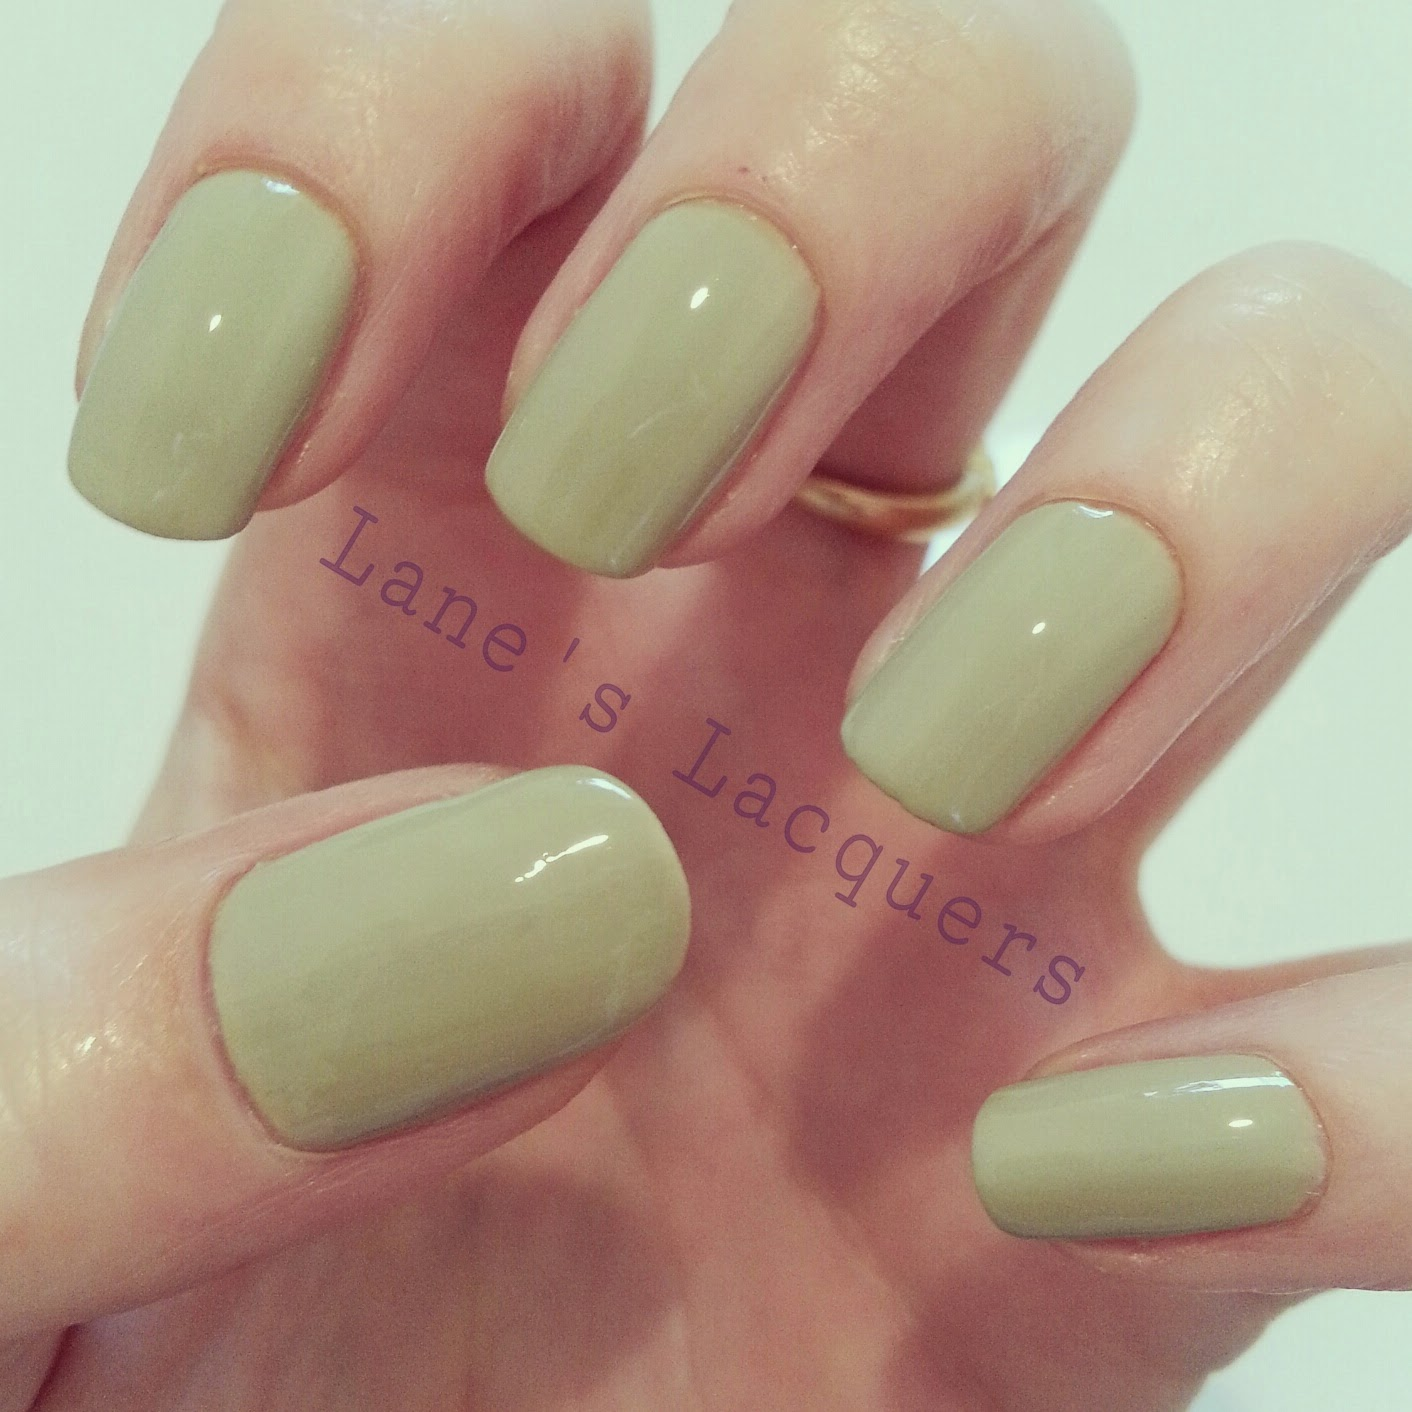 barry-m-summer-gelly-olive-swatch-manicure